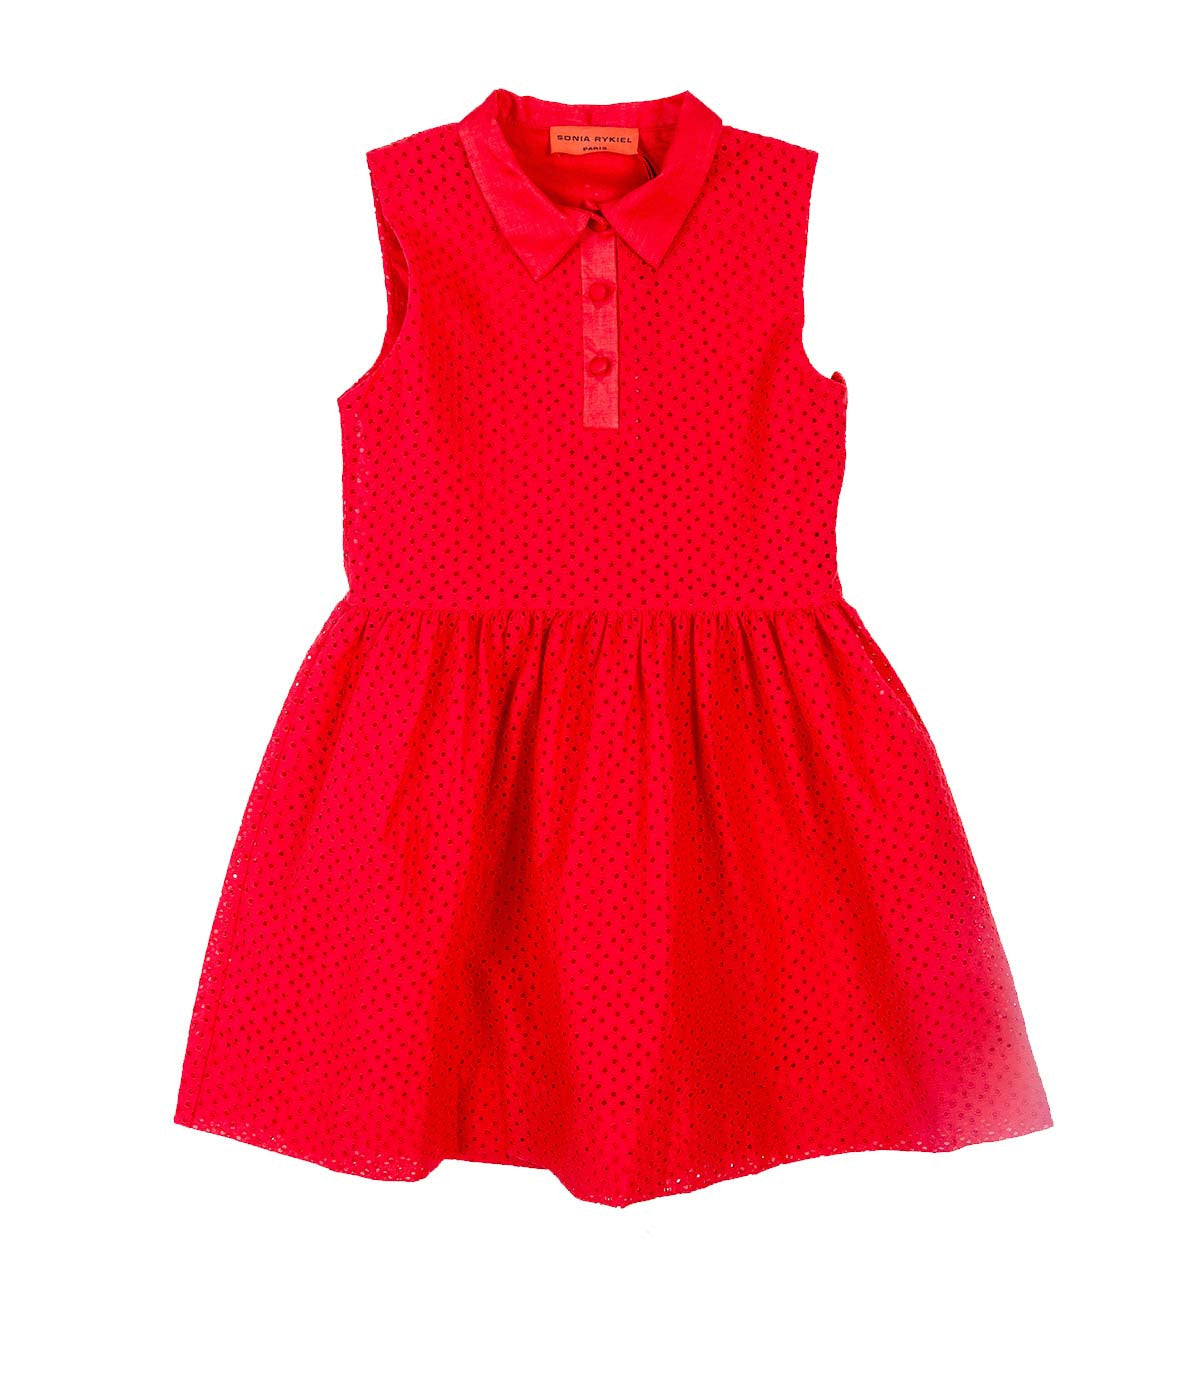 Kids Broderie Anglaise Dress